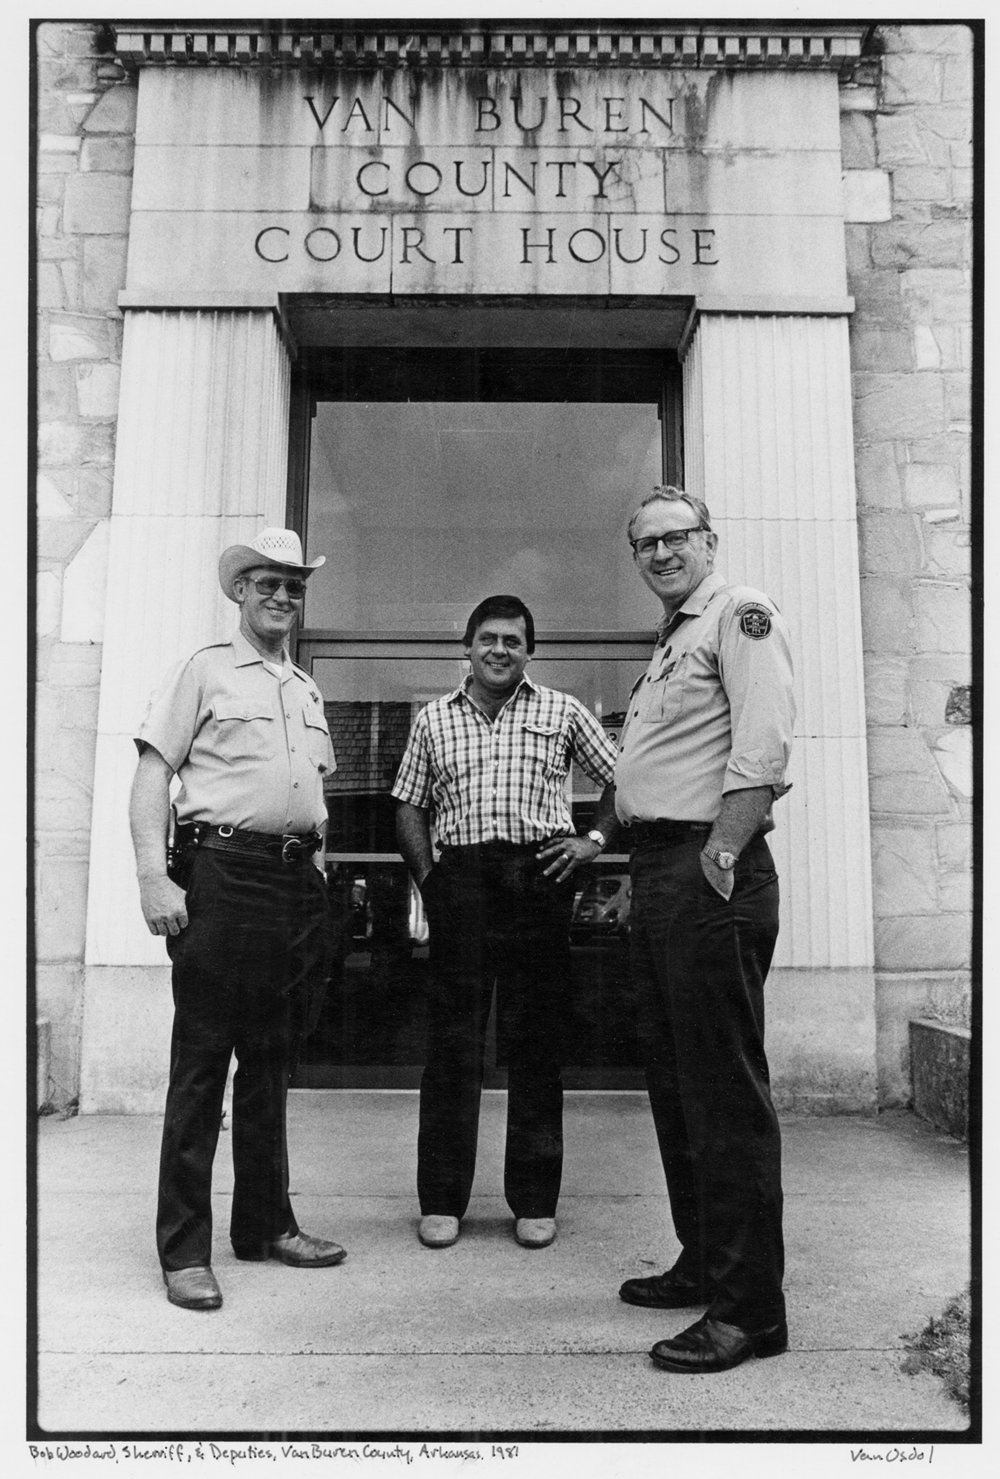 Sherriff and Deputies, Van Buren County, Arkansas, 1981